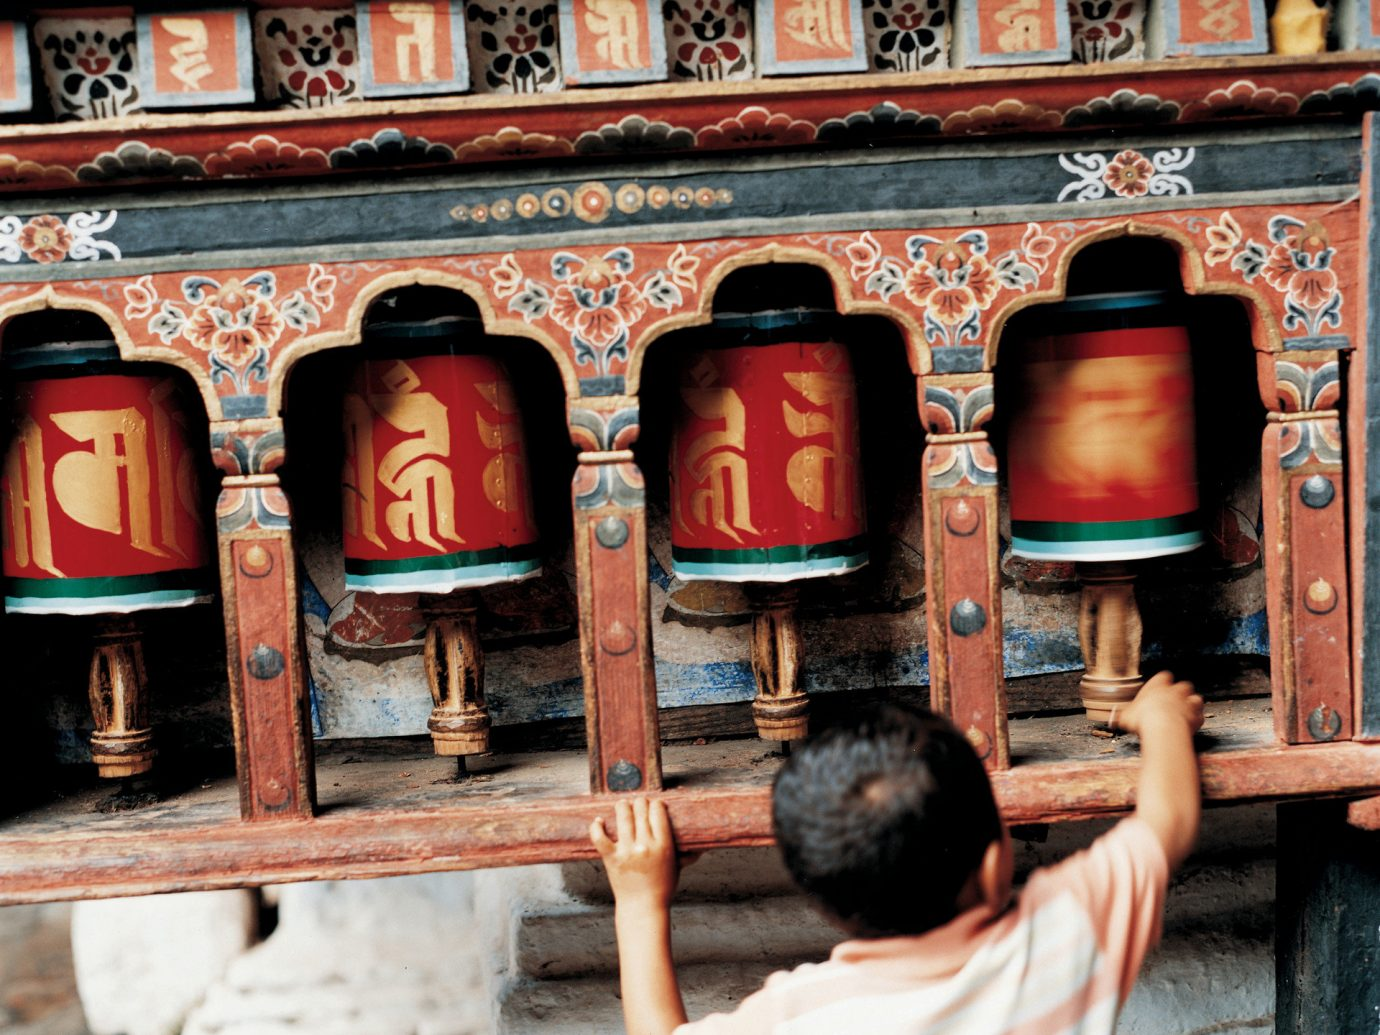 art children colorful Cultural culture decor detail people tradition traditional Travel Tips person outdoor man made object wood temple shrine travel old